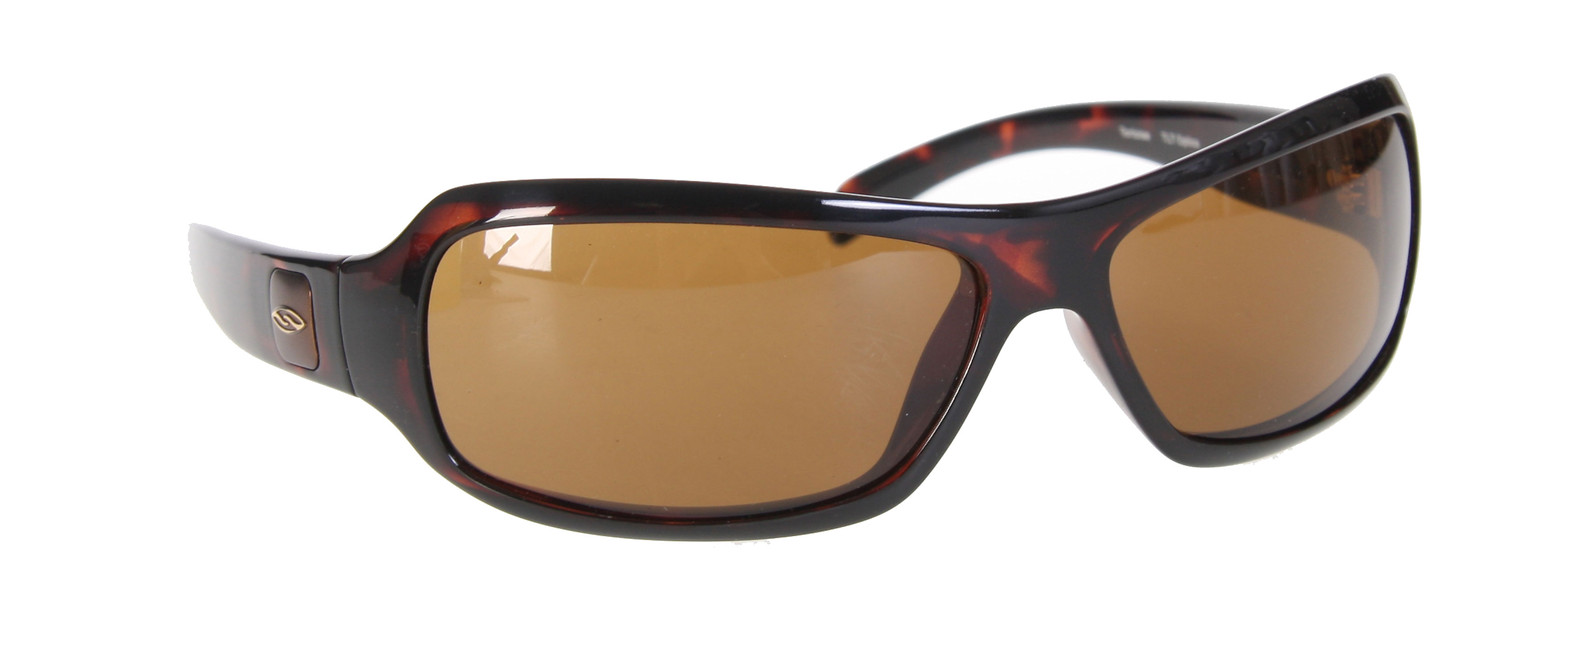 Smith Method Sunglasses Tortoise/Sn Brown Lens  smith-method-sngls-tortbrwn-09.jpg